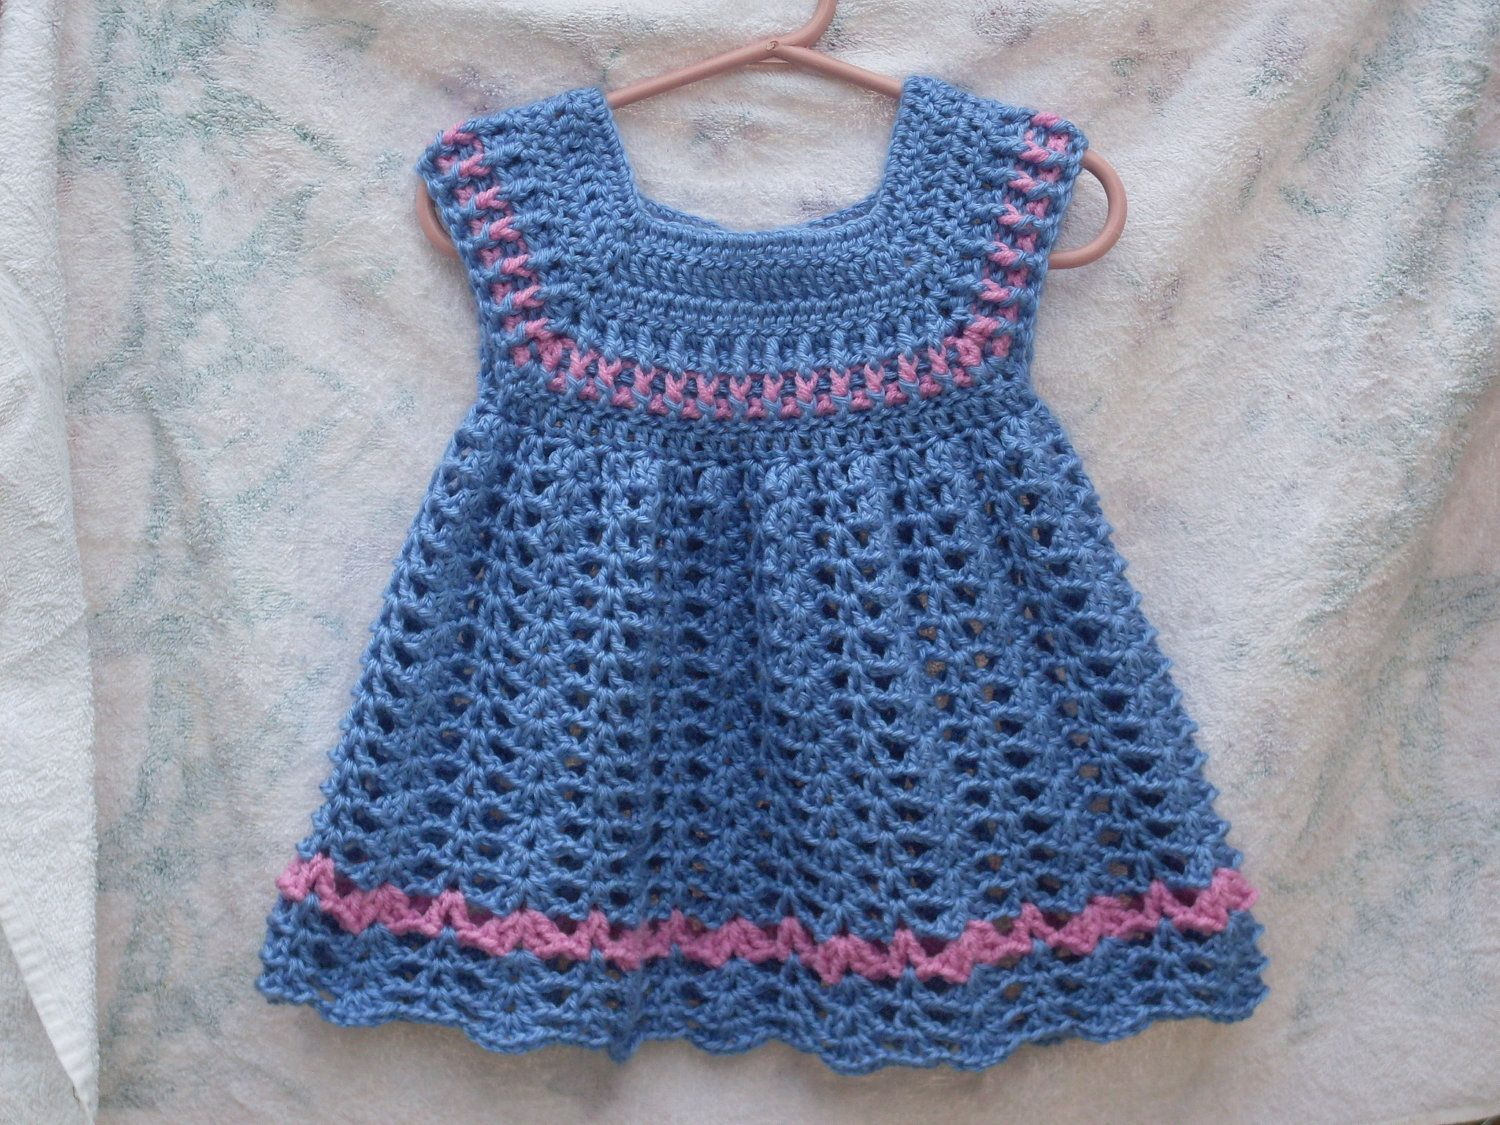 Powder Toddler Girls Dress CROCHET PATTERN | Crochet toddler ...